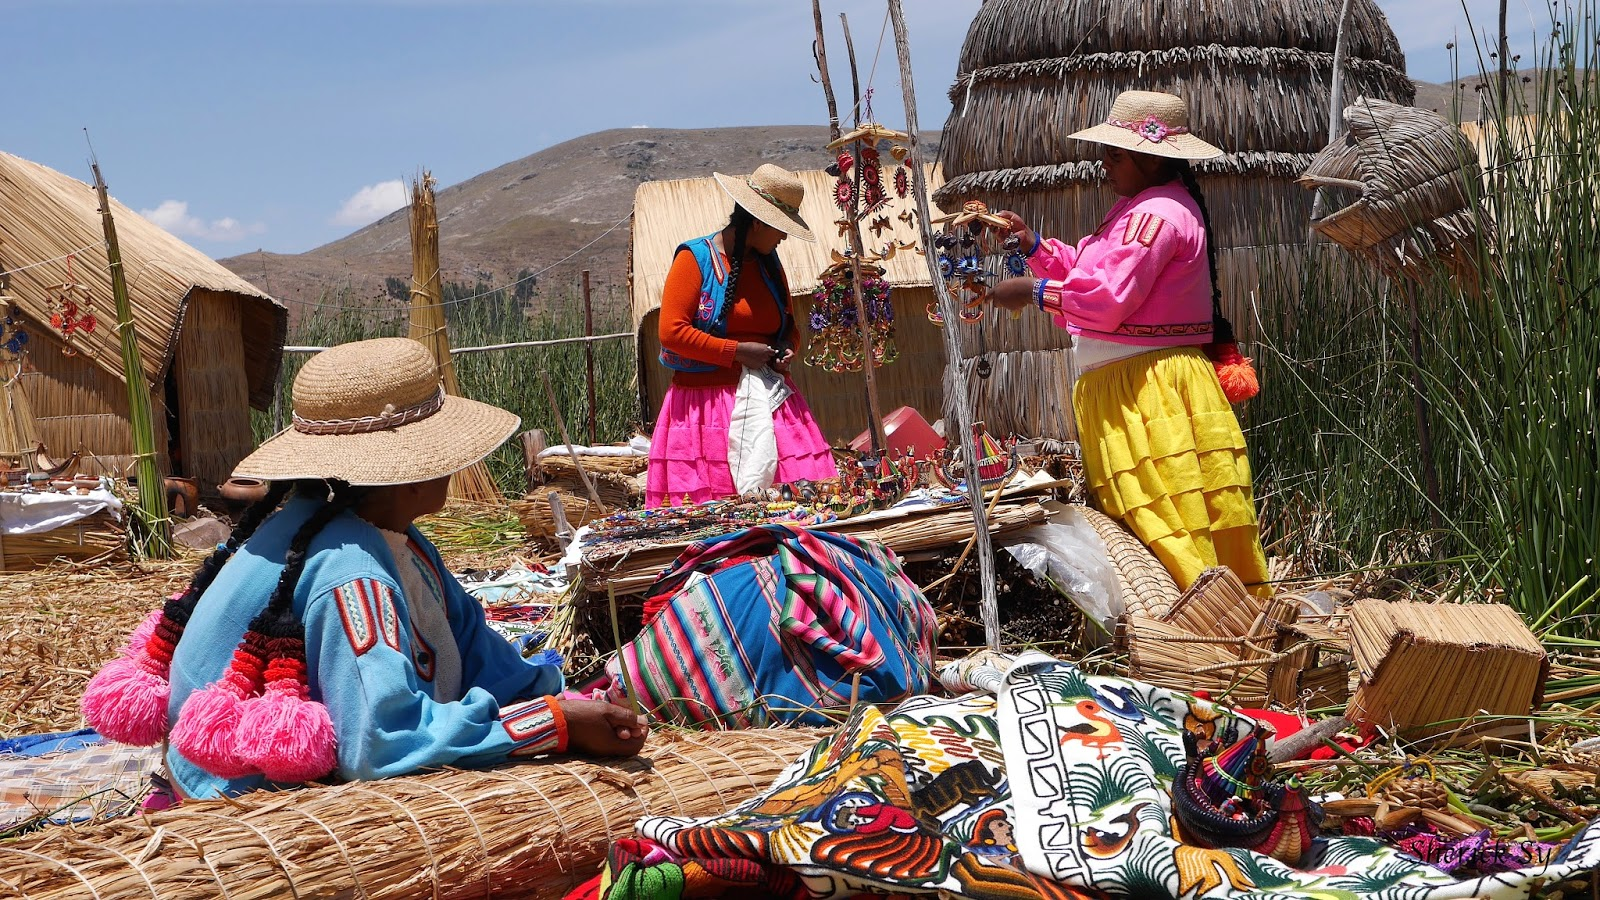 Arts and Crafts on Uros Islands, Lake Titicaca, Peru